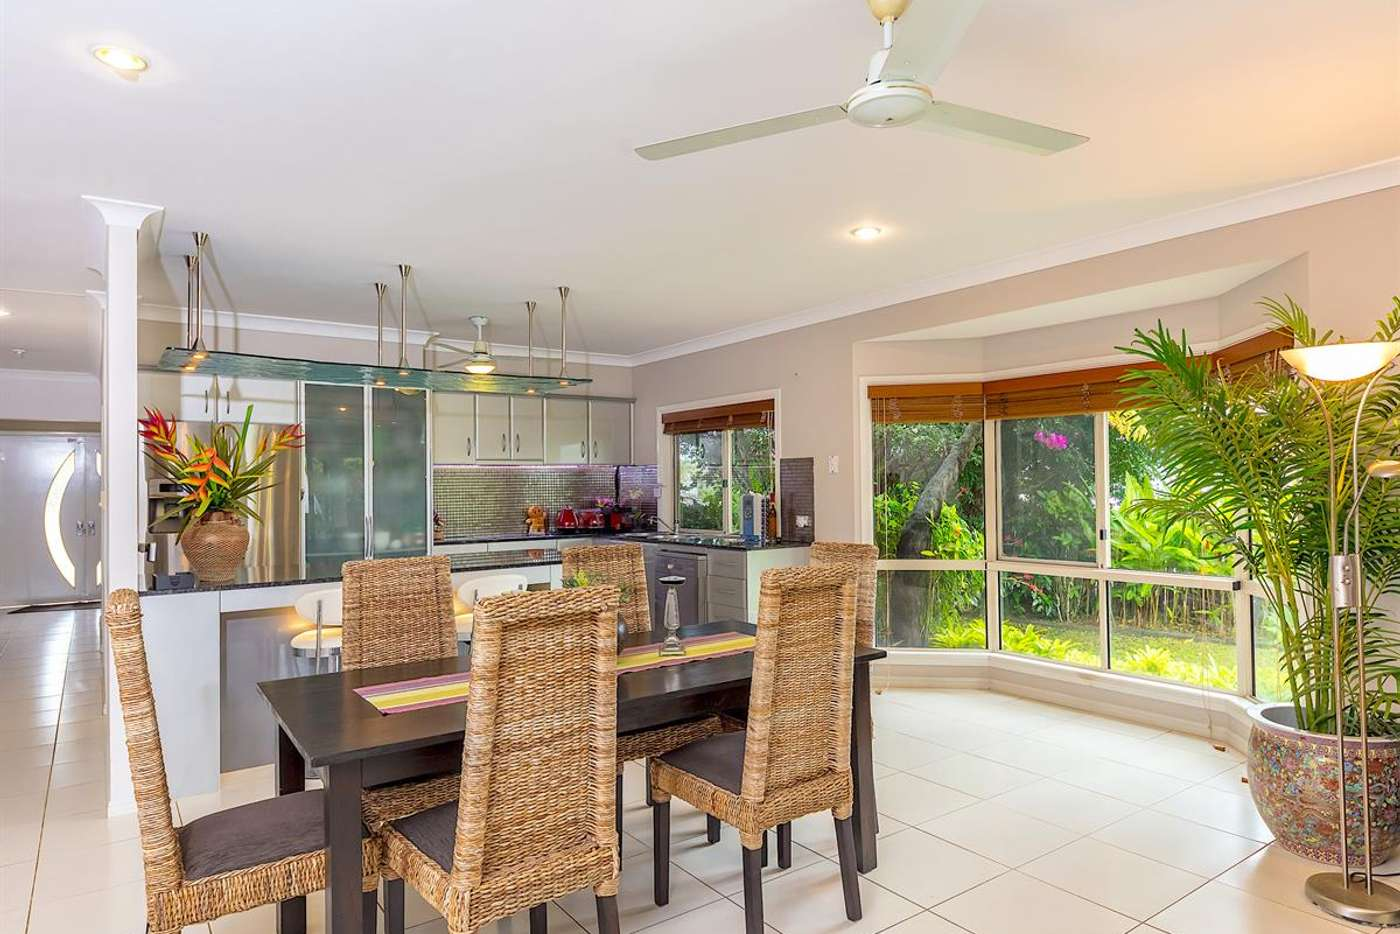 Main view of Homely house listing, 28 Findlay Street, Brinsmead QLD 4870